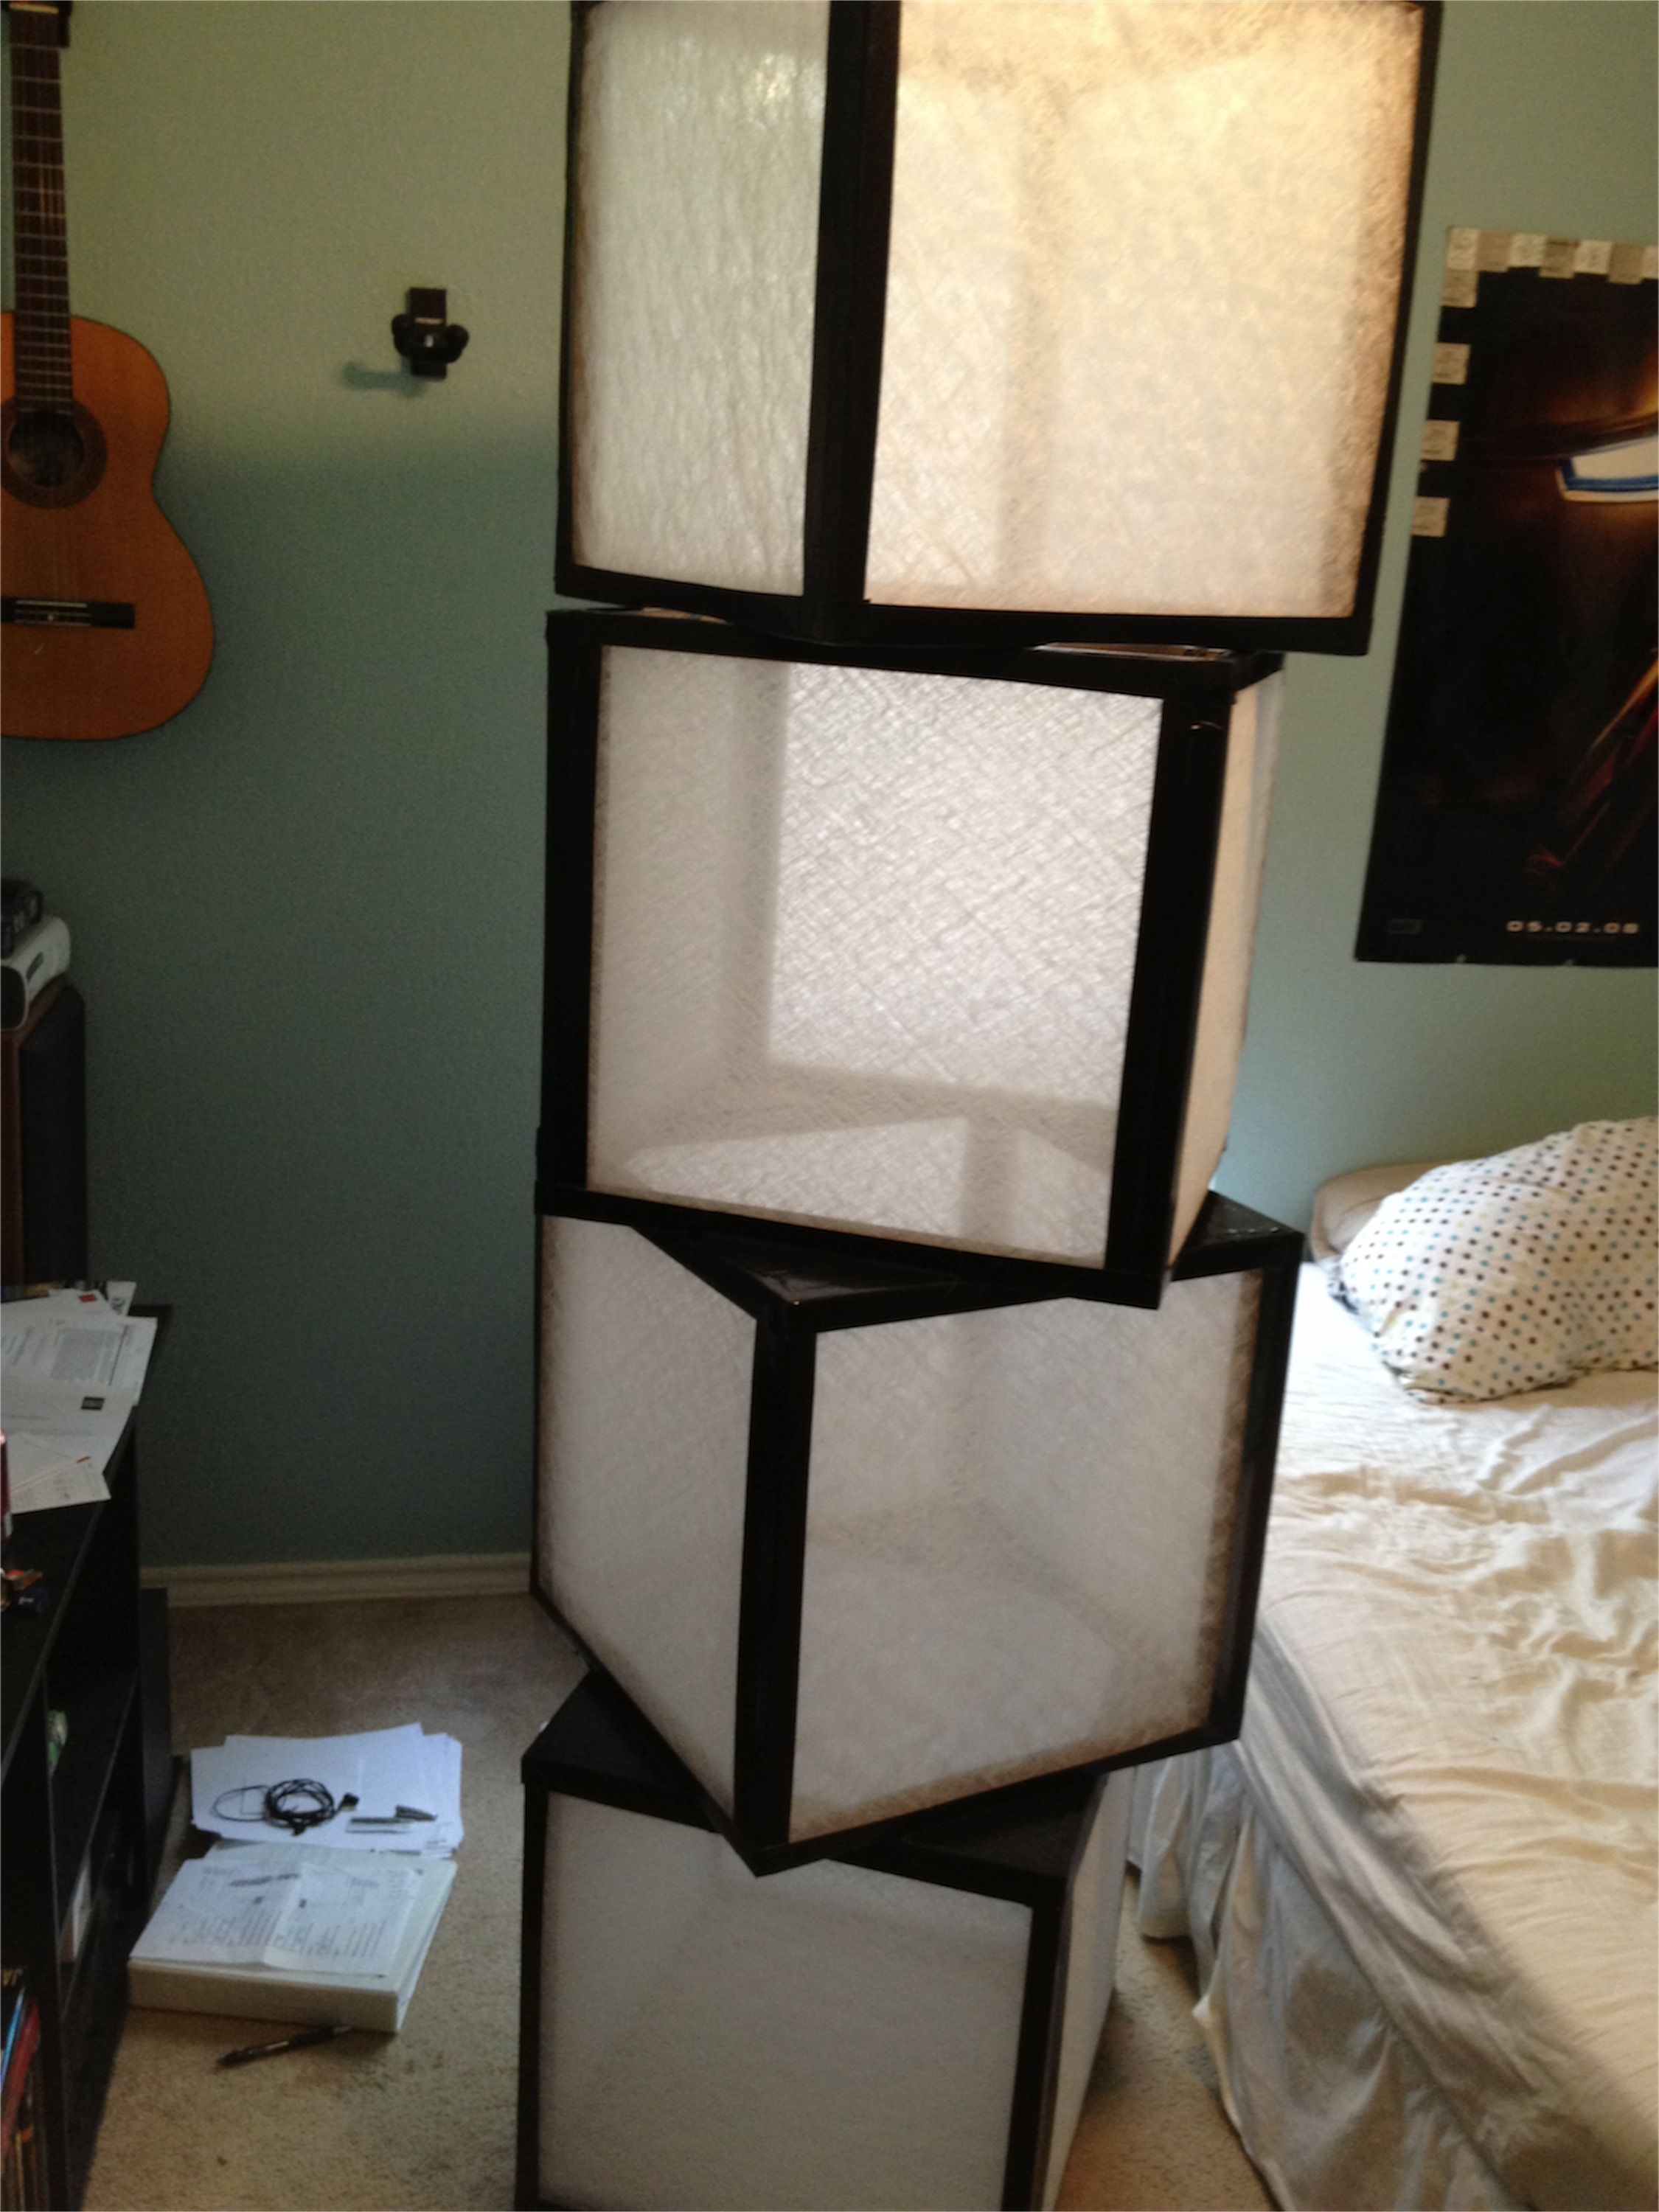 How To Build A Floor Lamp Floor Or Table Lamp Diy With Furnace Filters And Duct Tape